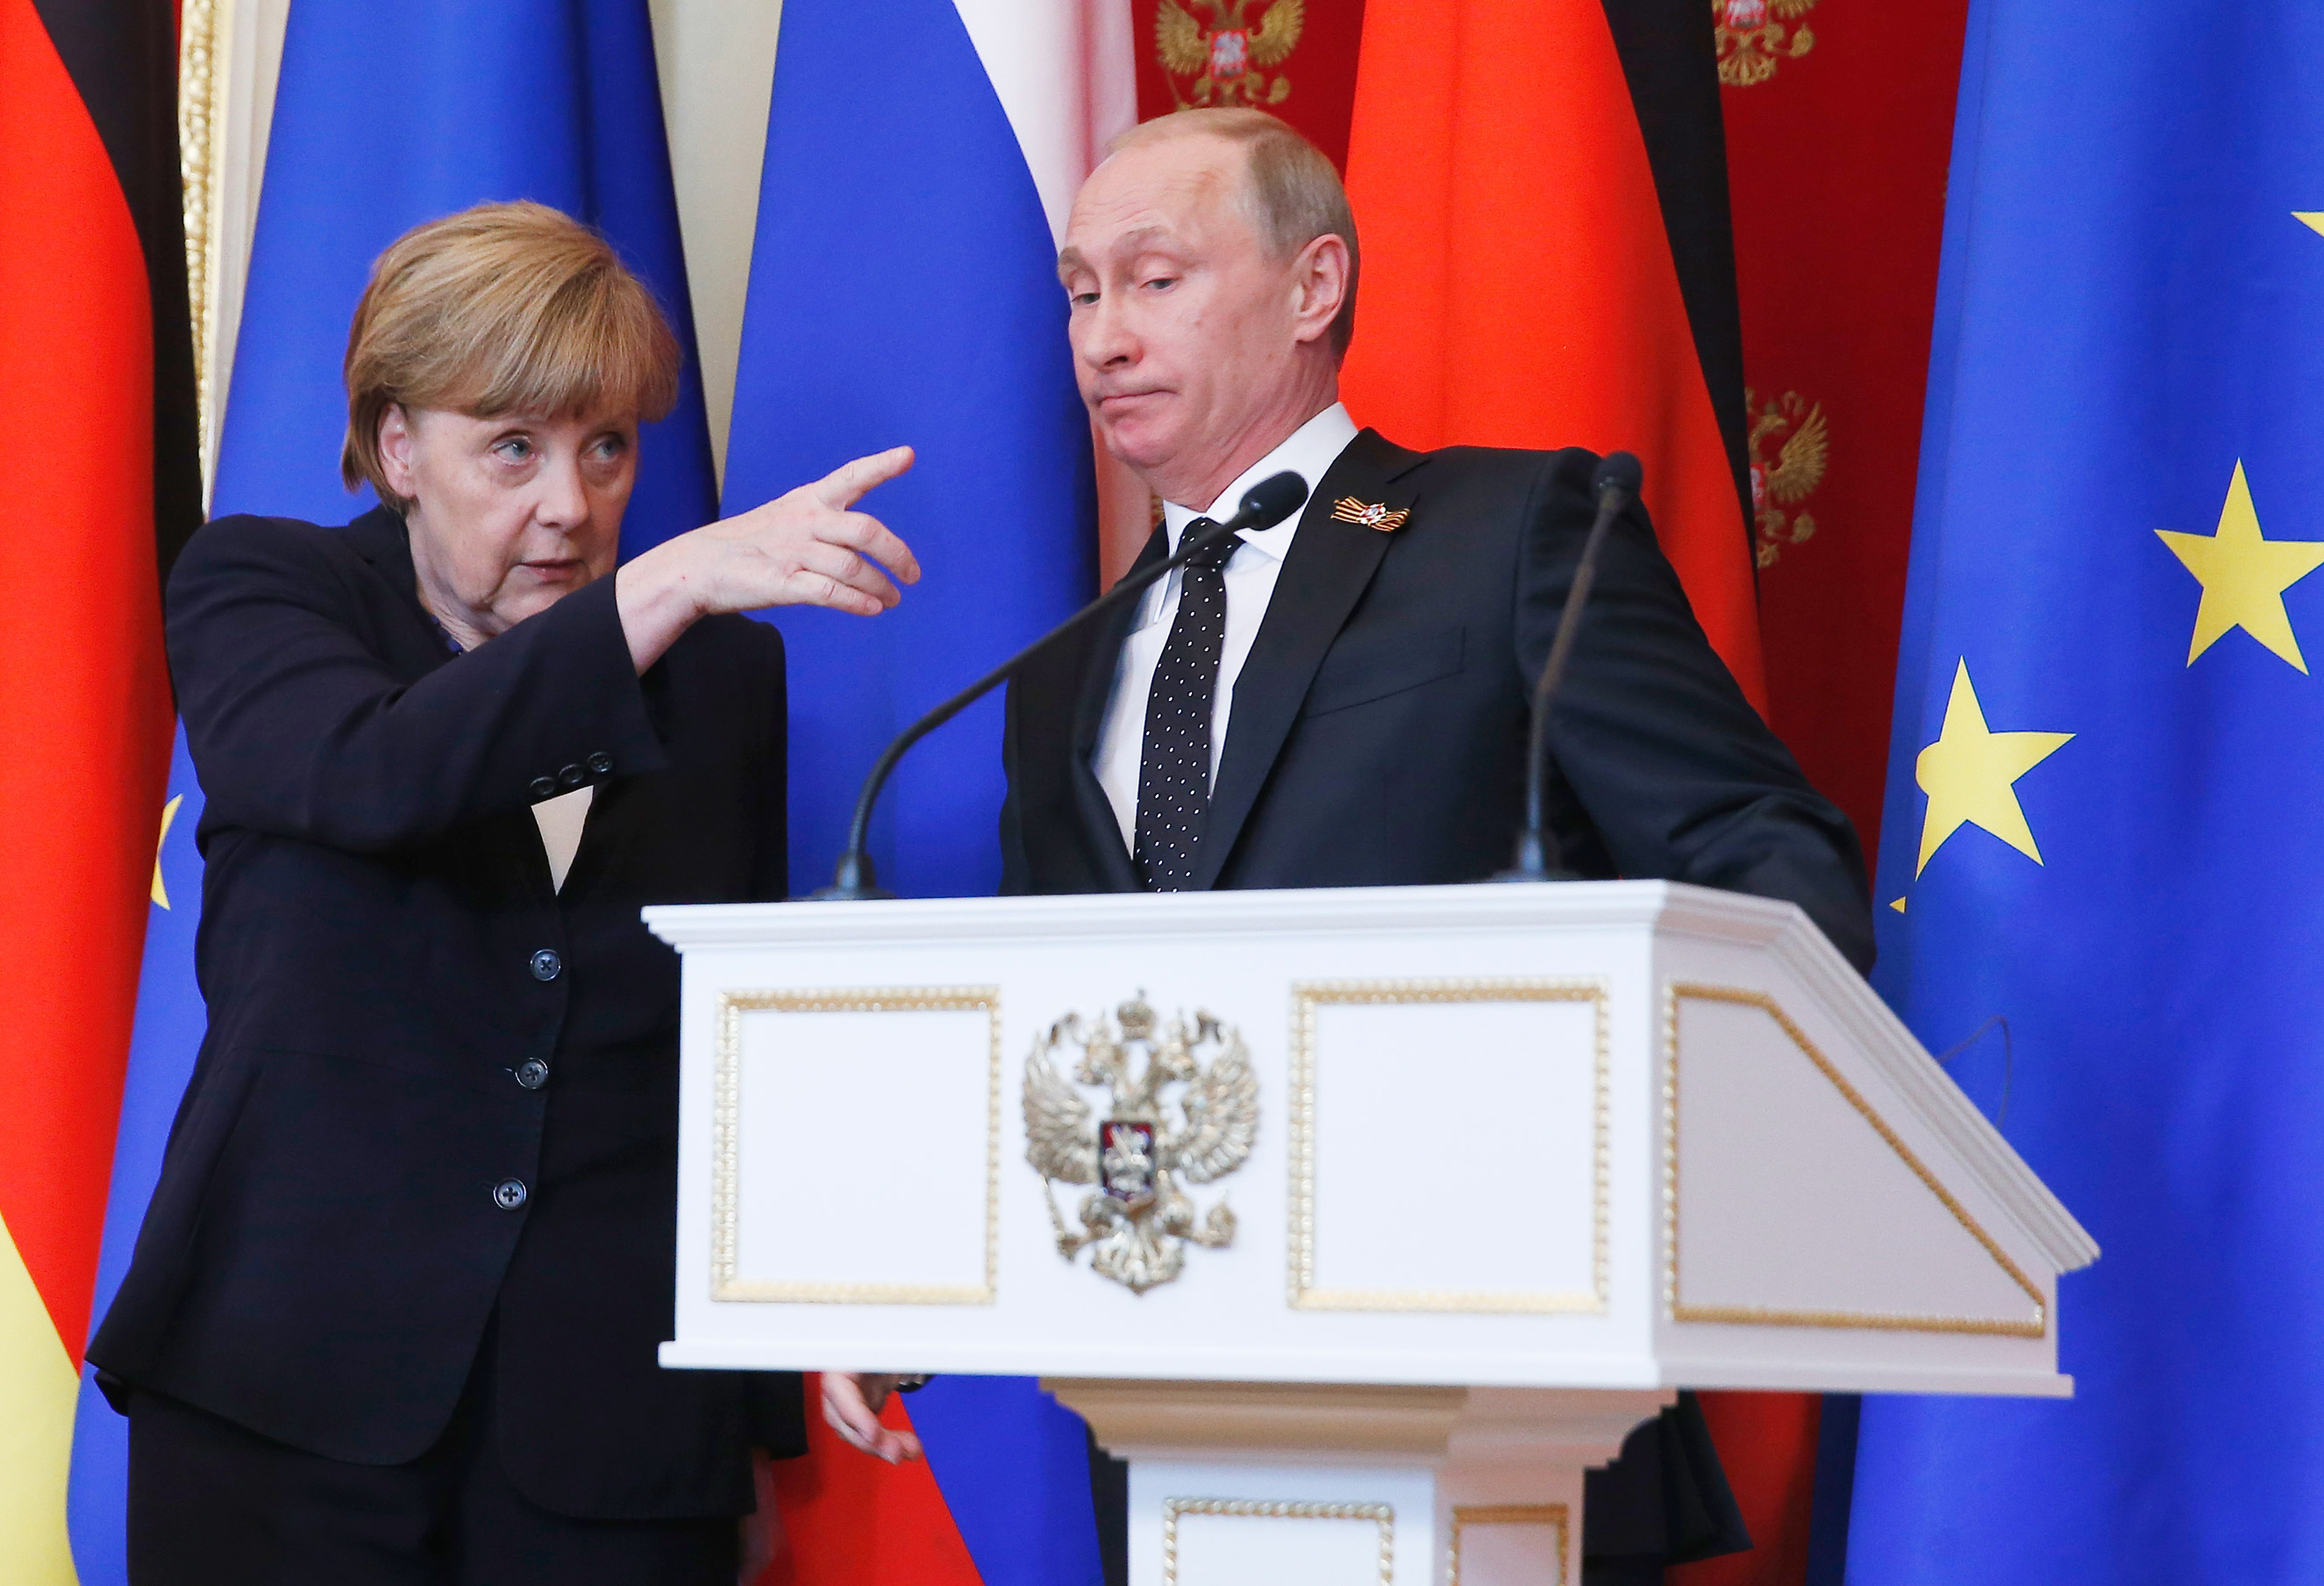 May: Chancellor Angela Merkel gestures as Russian President Vladimir Putin looks on during a news conference after peace talks about east Ukraine                               at the Kremlin in Moscow on May 10, 2015.